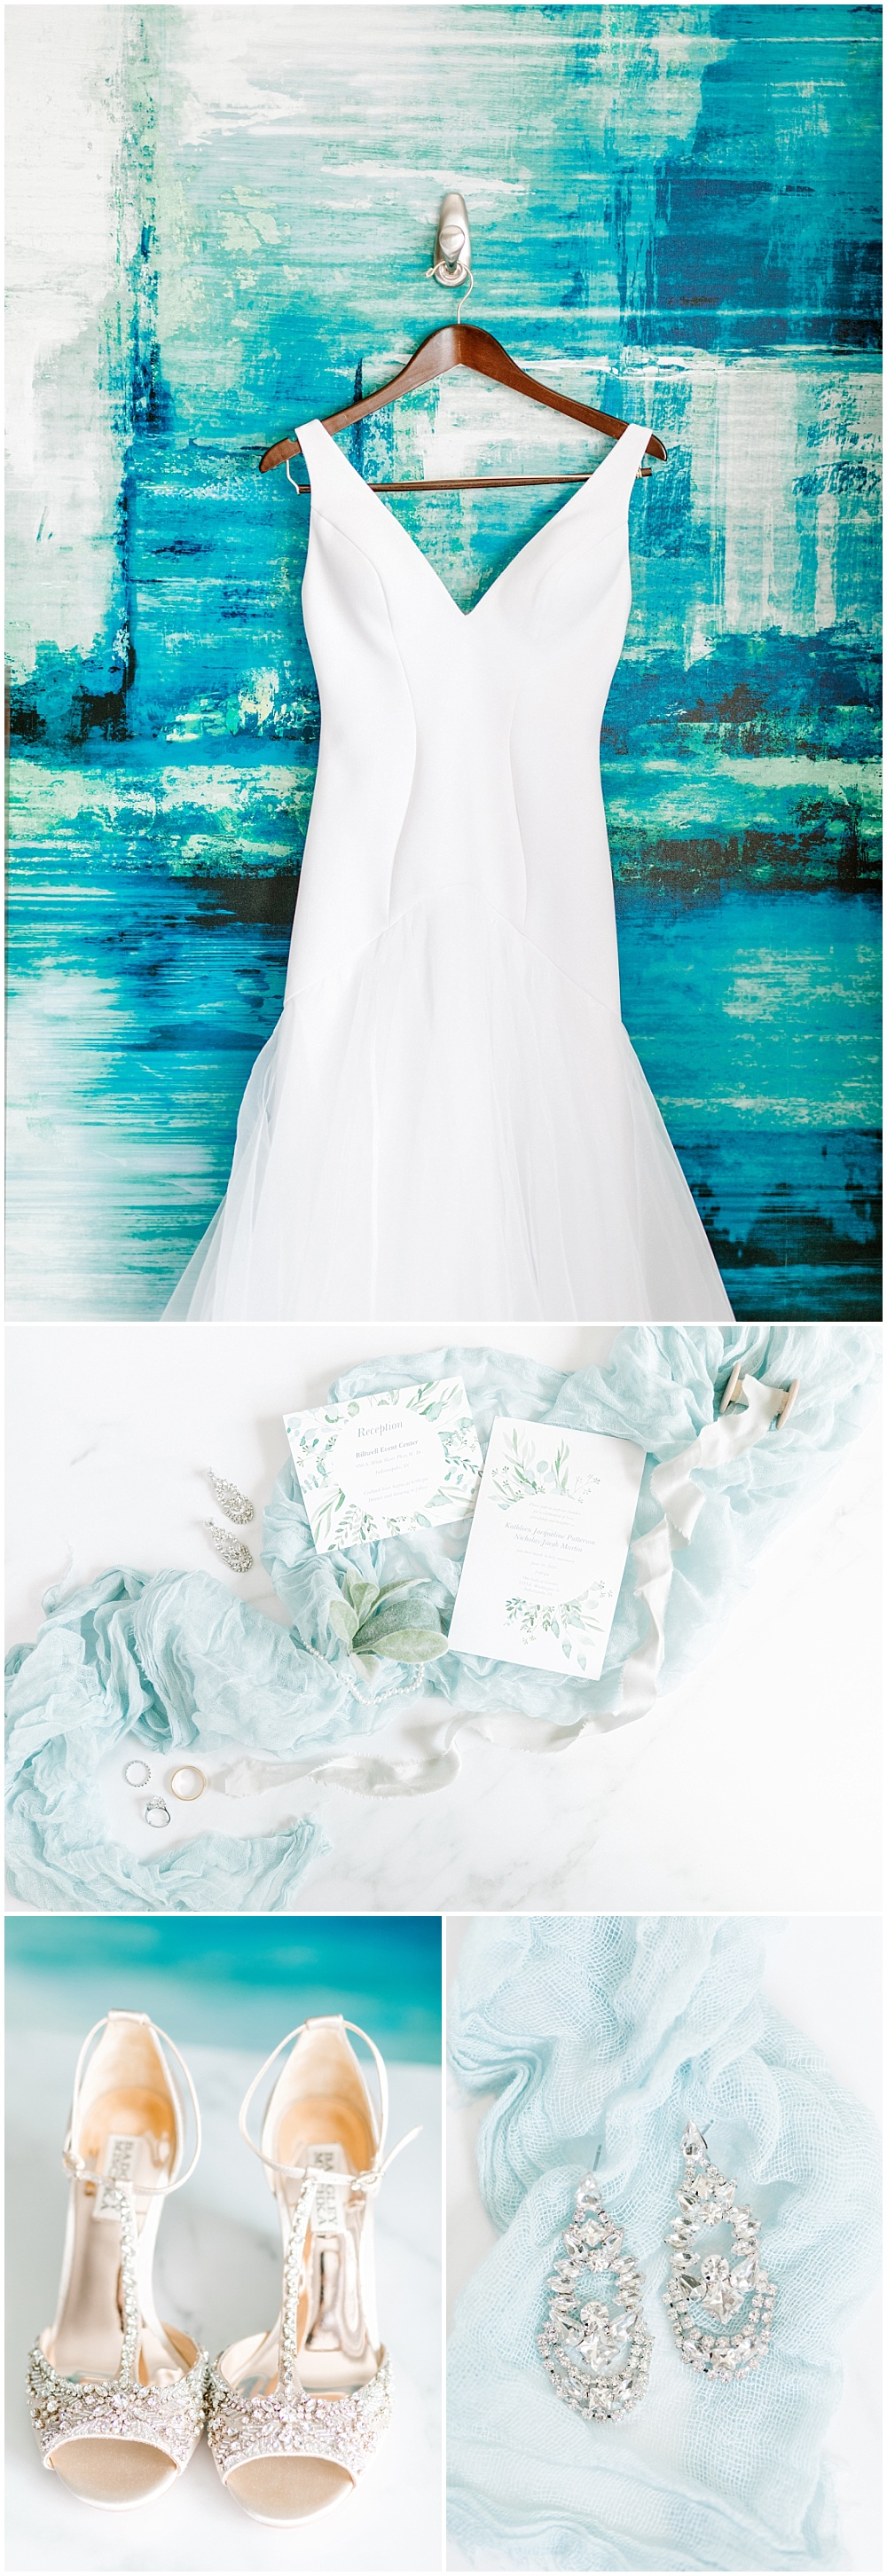 White wedding dress against a blue mural wall, gorgeous watercolor invitation suite flat lay and bridal details. | NFL Player Nick Martin's rustic chic summer wedding at the Biltwell Event Center